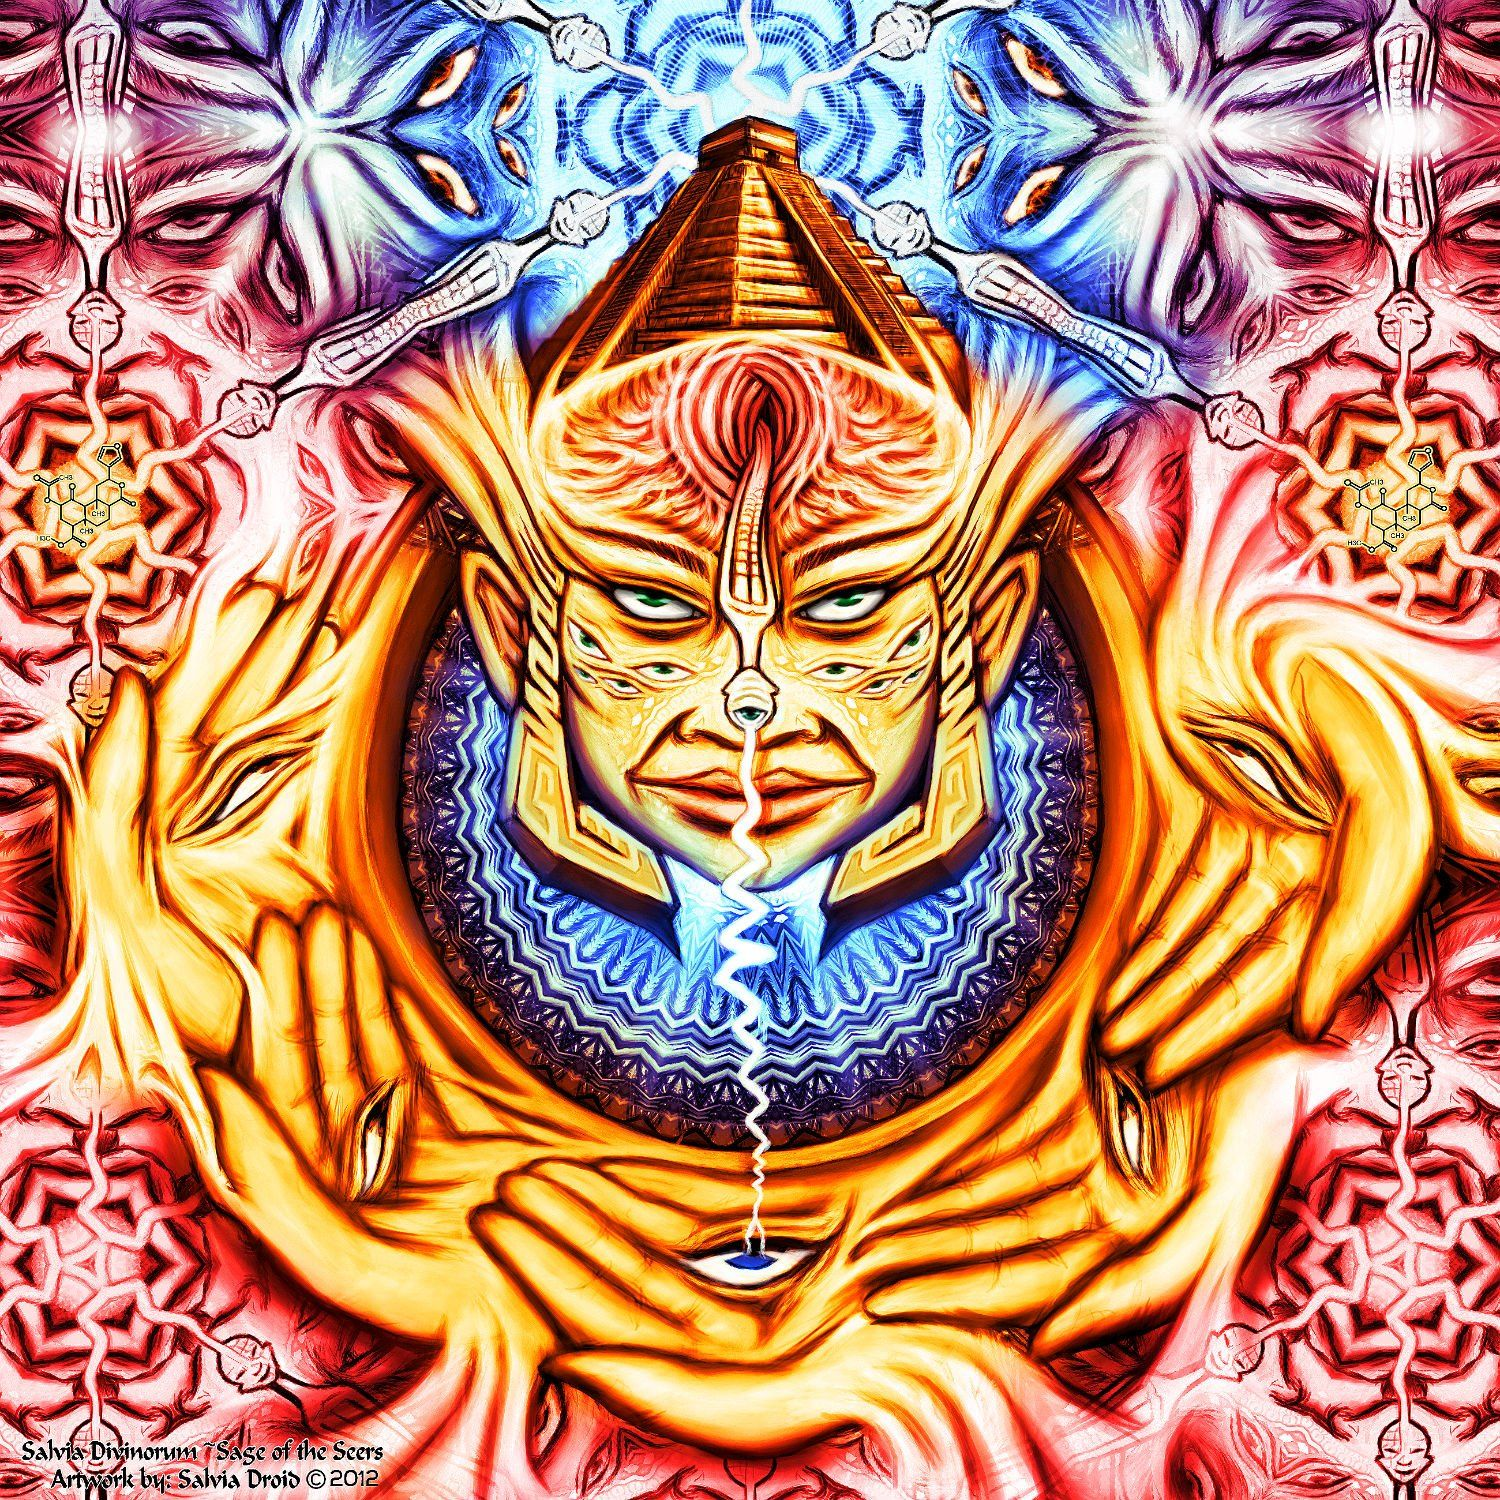 SalviaDroid - Member Art Galleries - Welcome to the DMT